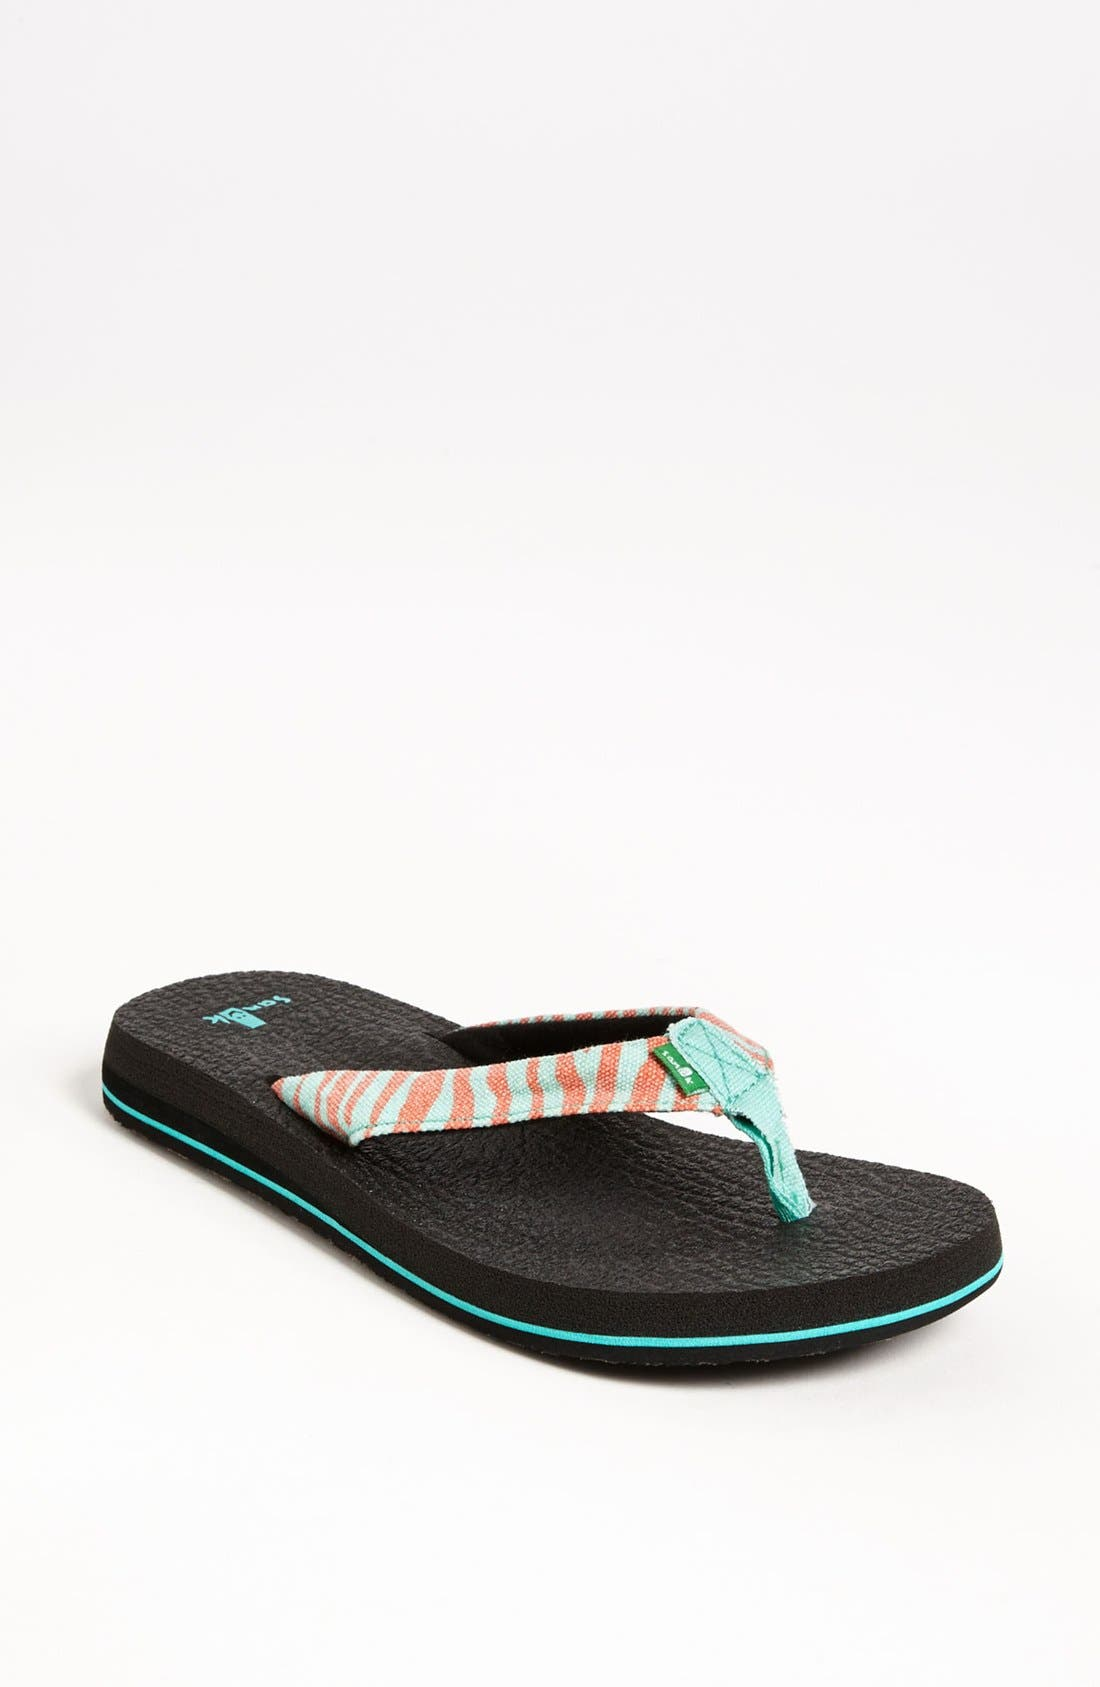 Alternate Image 1 Selected - Sanuk 'Yoga Wildlife' Flip Flop (Women)